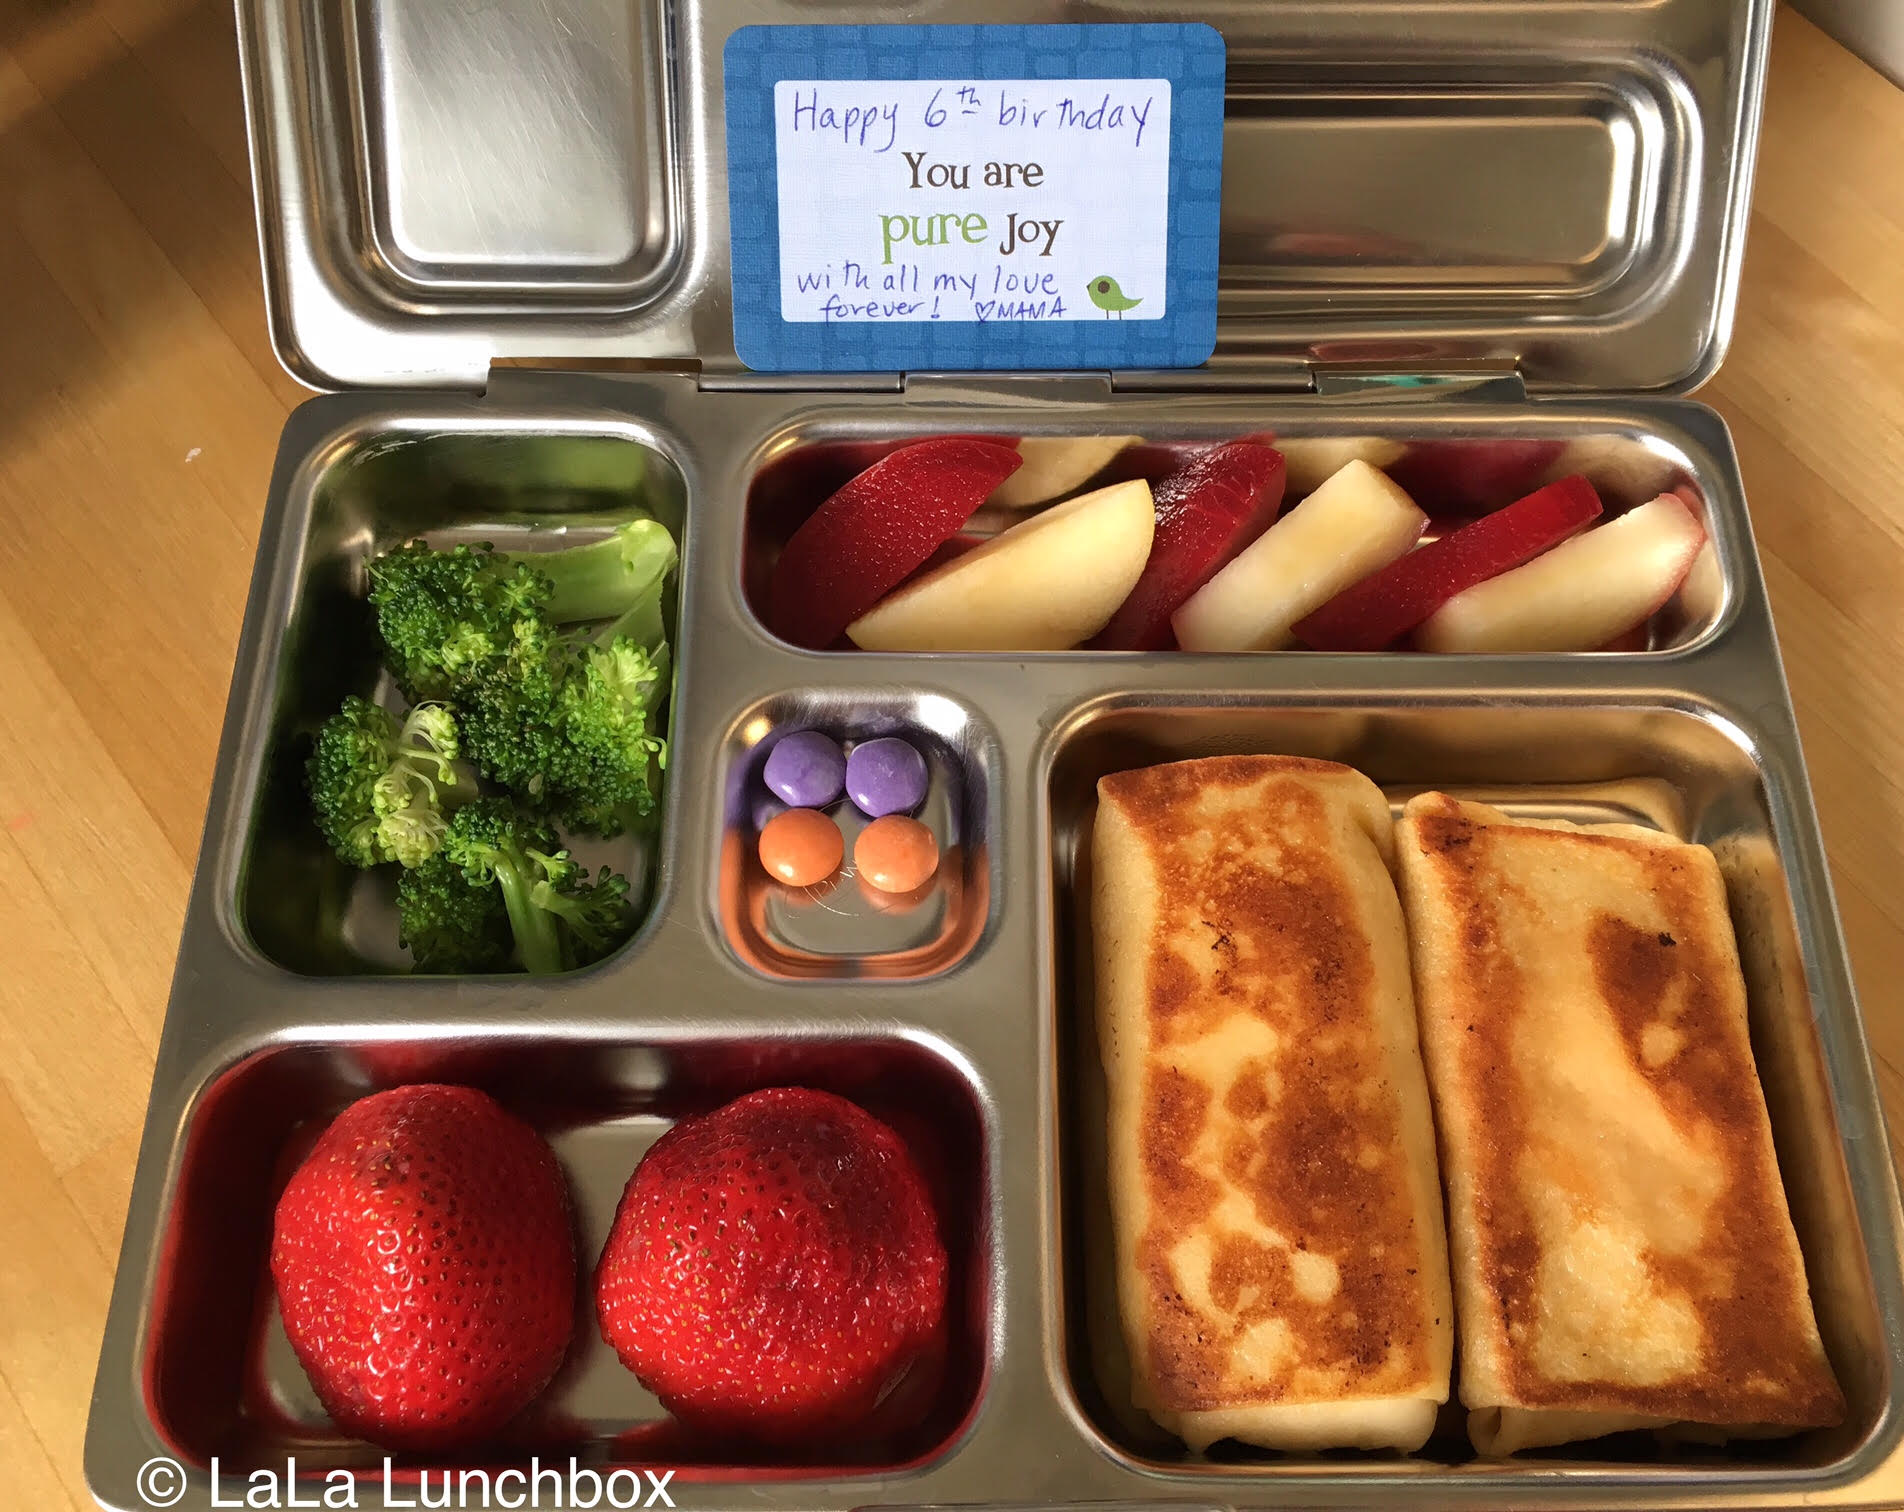 Cheese blintzes, nectarine and plum, strawberries, broccoli and a sweet chocolate treat. Does your kiddo have a summer birthday? We absolutely love the cards from  Lunchbox Love  - and not just for birthdays! They're regular accompaniments to lunches all year round here.